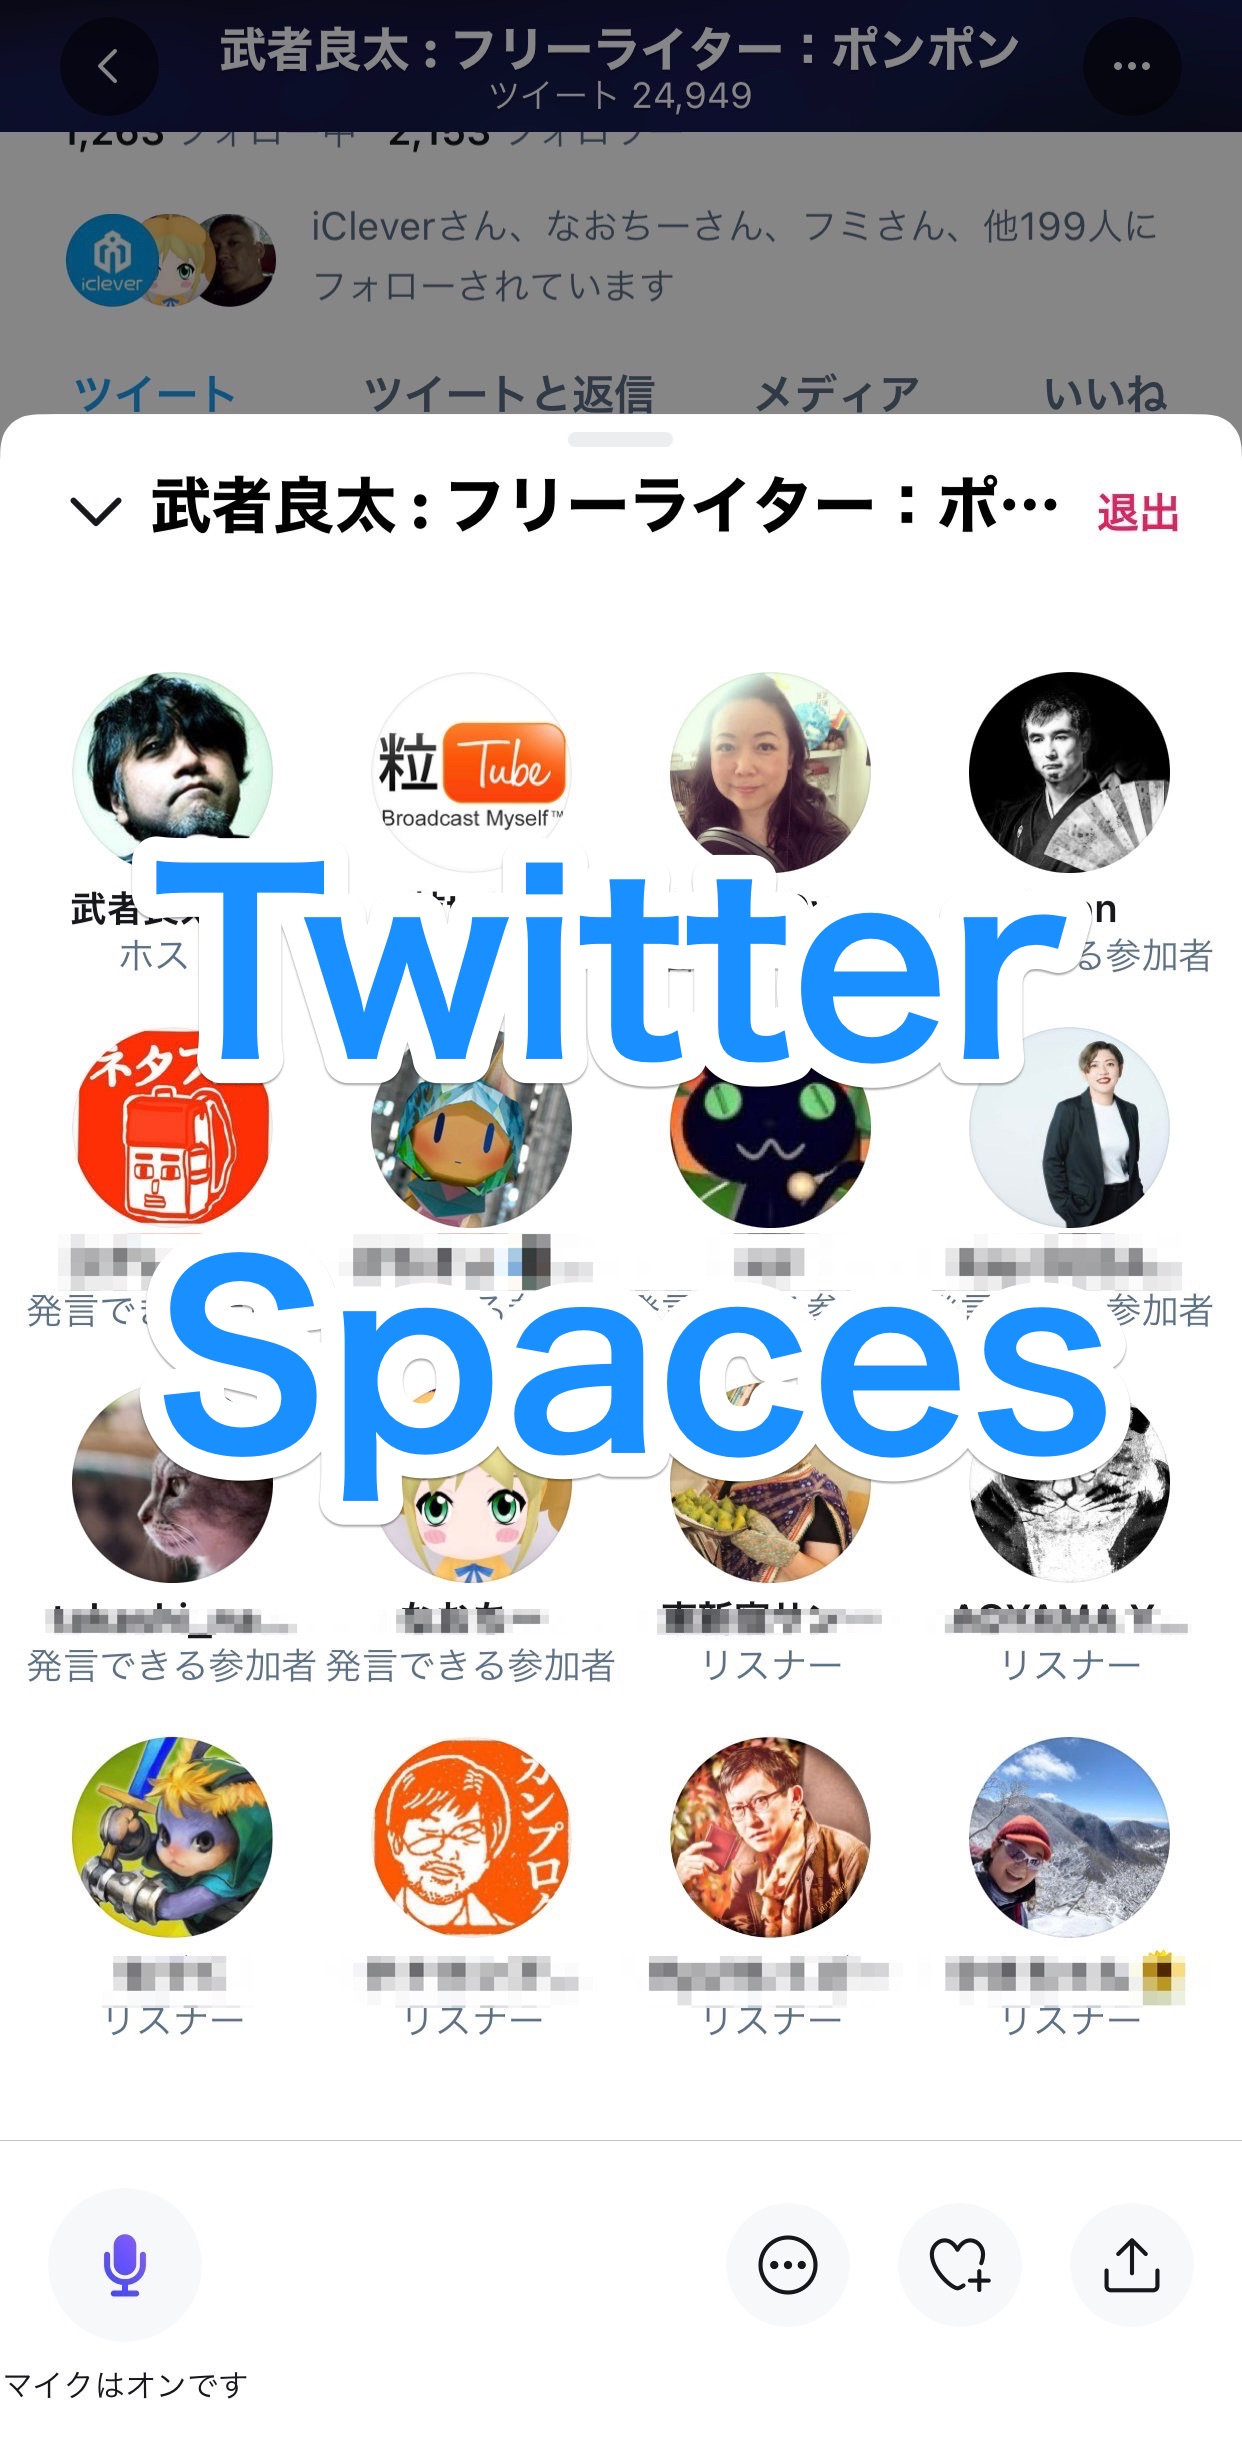 Twitter spaces 202102 08